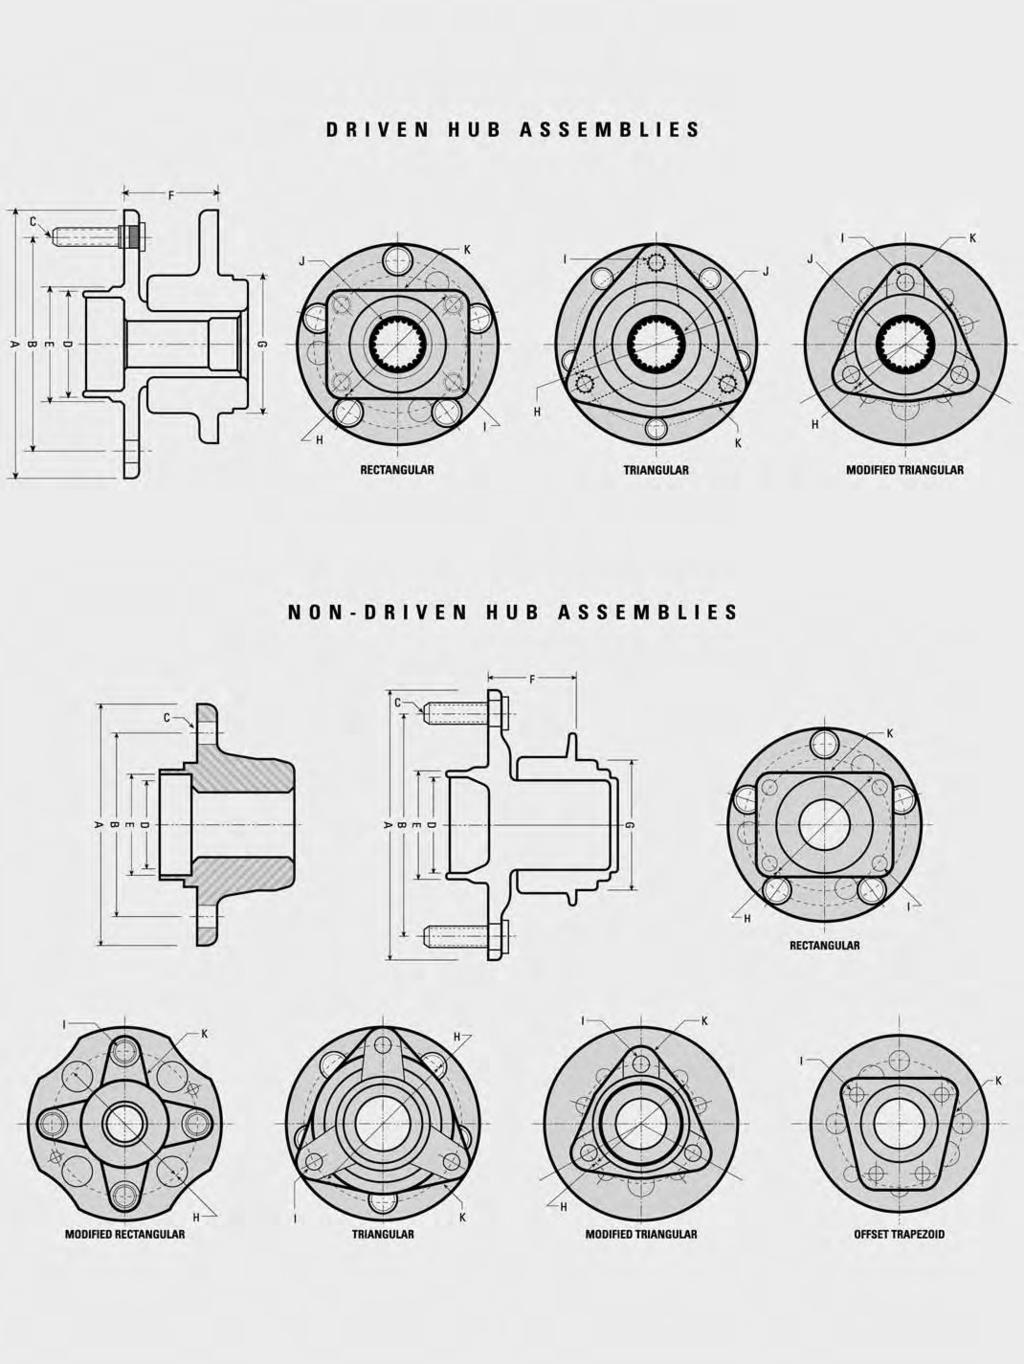 Bsg The Timken Company Pdf Hub Assembly Diagram 132 Diagrams 129